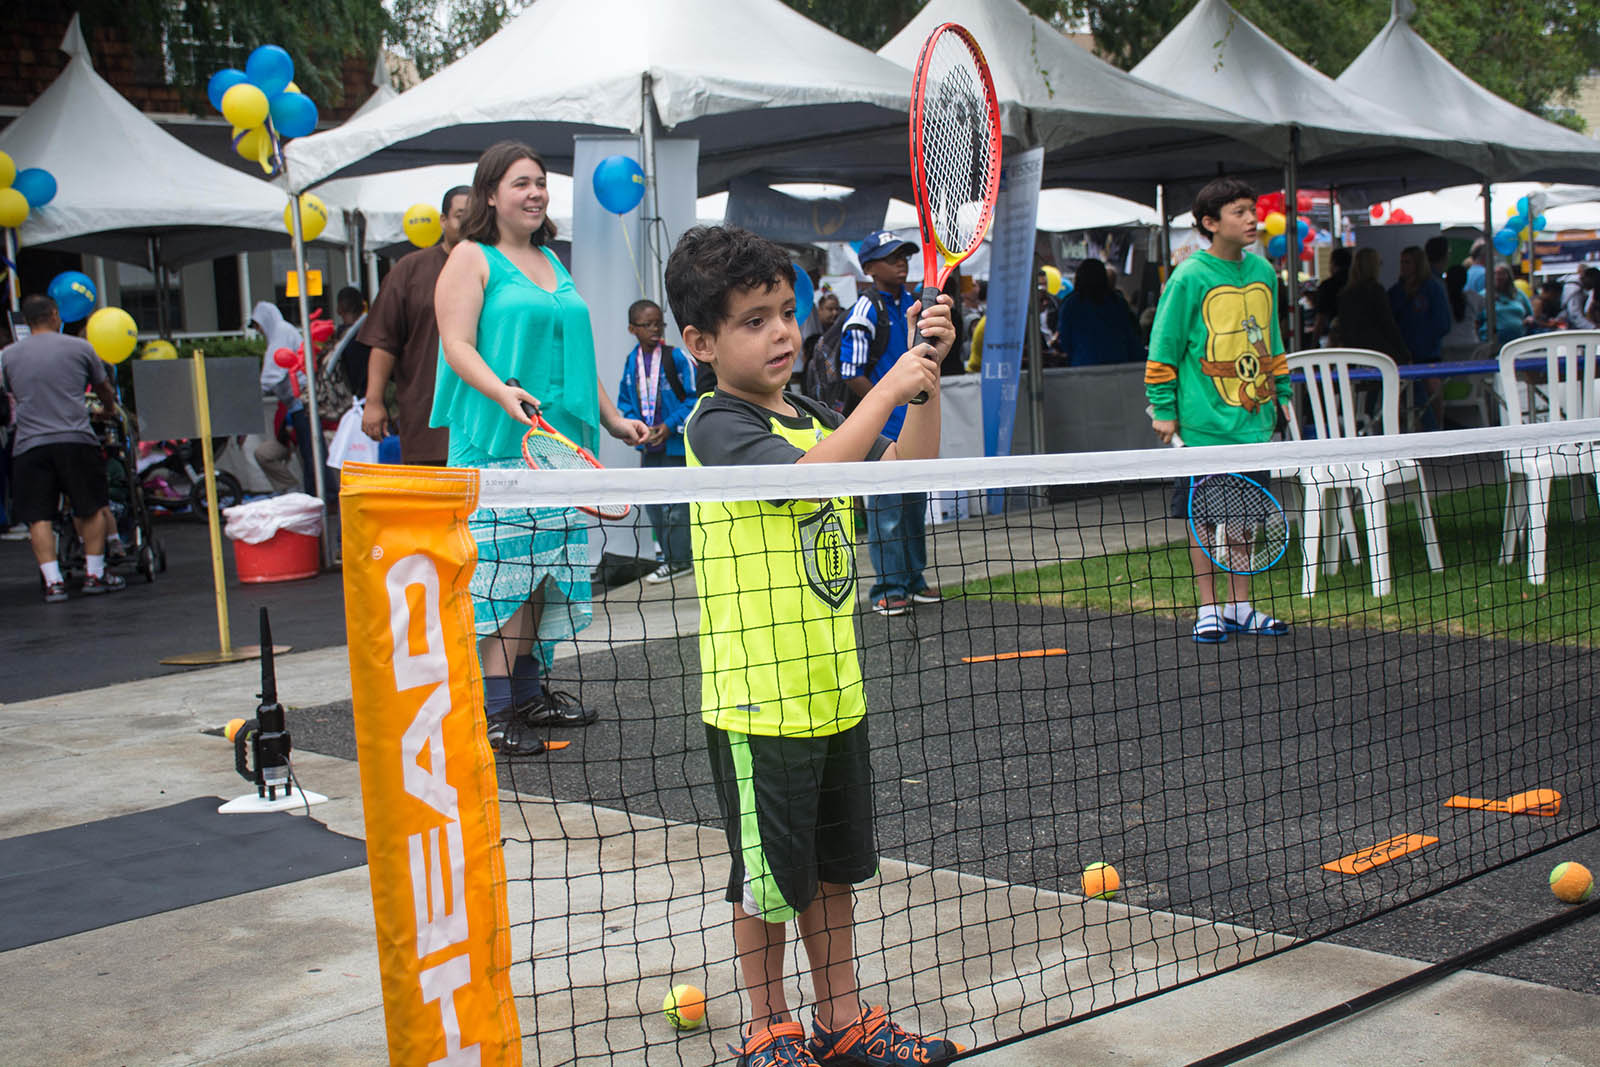 ACEing Autism introduced tennis to over 50 new children at